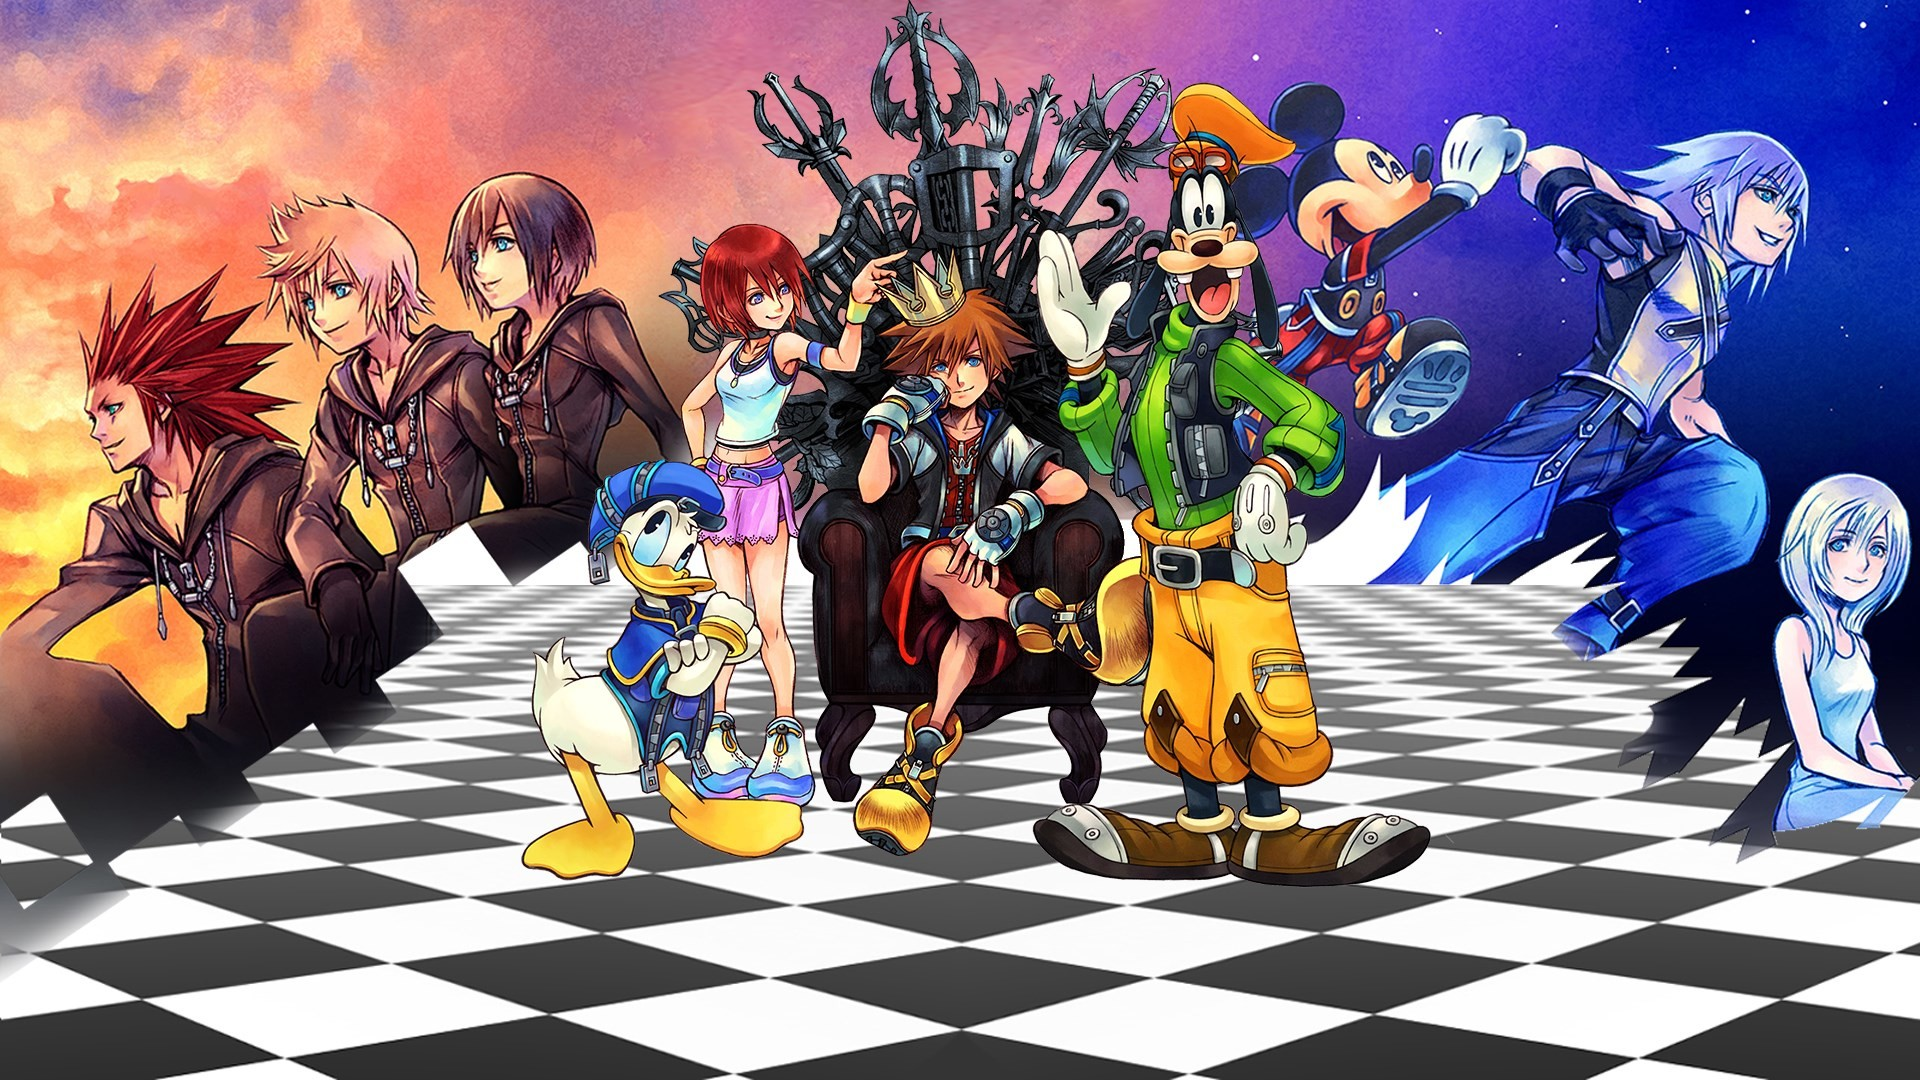 1920x1080 ... kingdom hearts hd wallpapers 1080p high quality 2048x1537 1833 ...